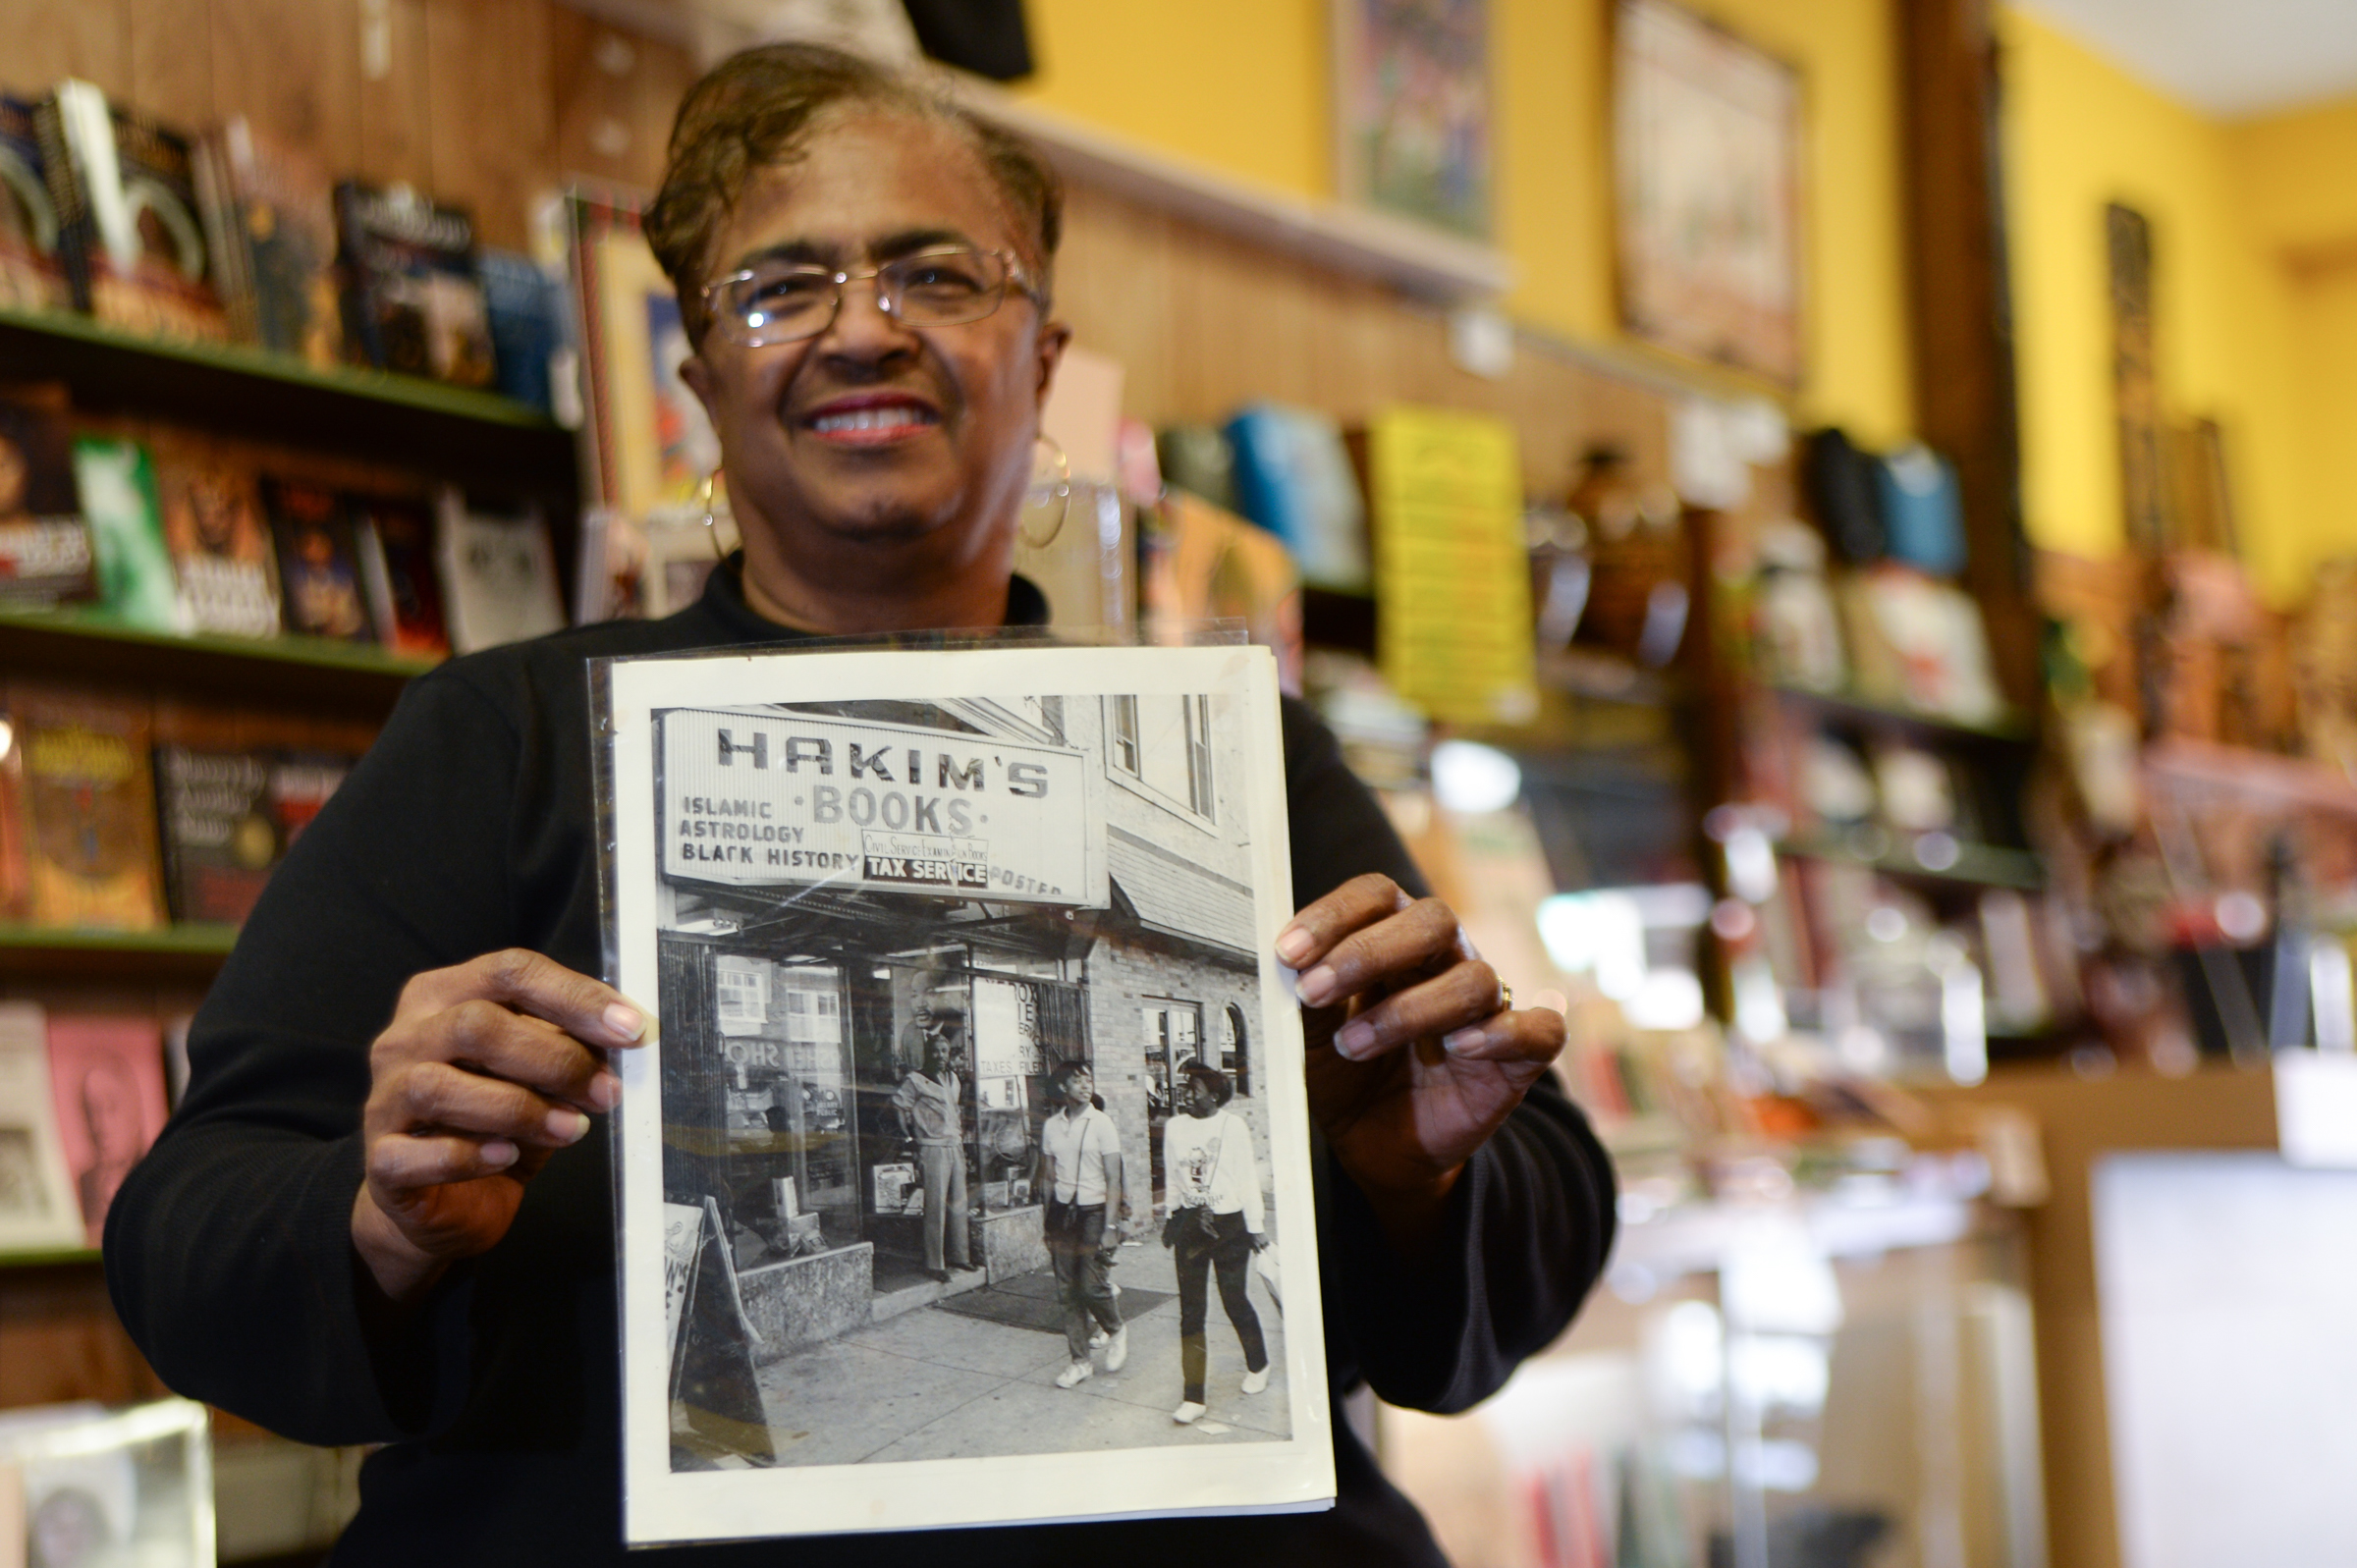 Yvonne Blake holds a photo of her father Dawud Hakim in front of the store in the 1970s.